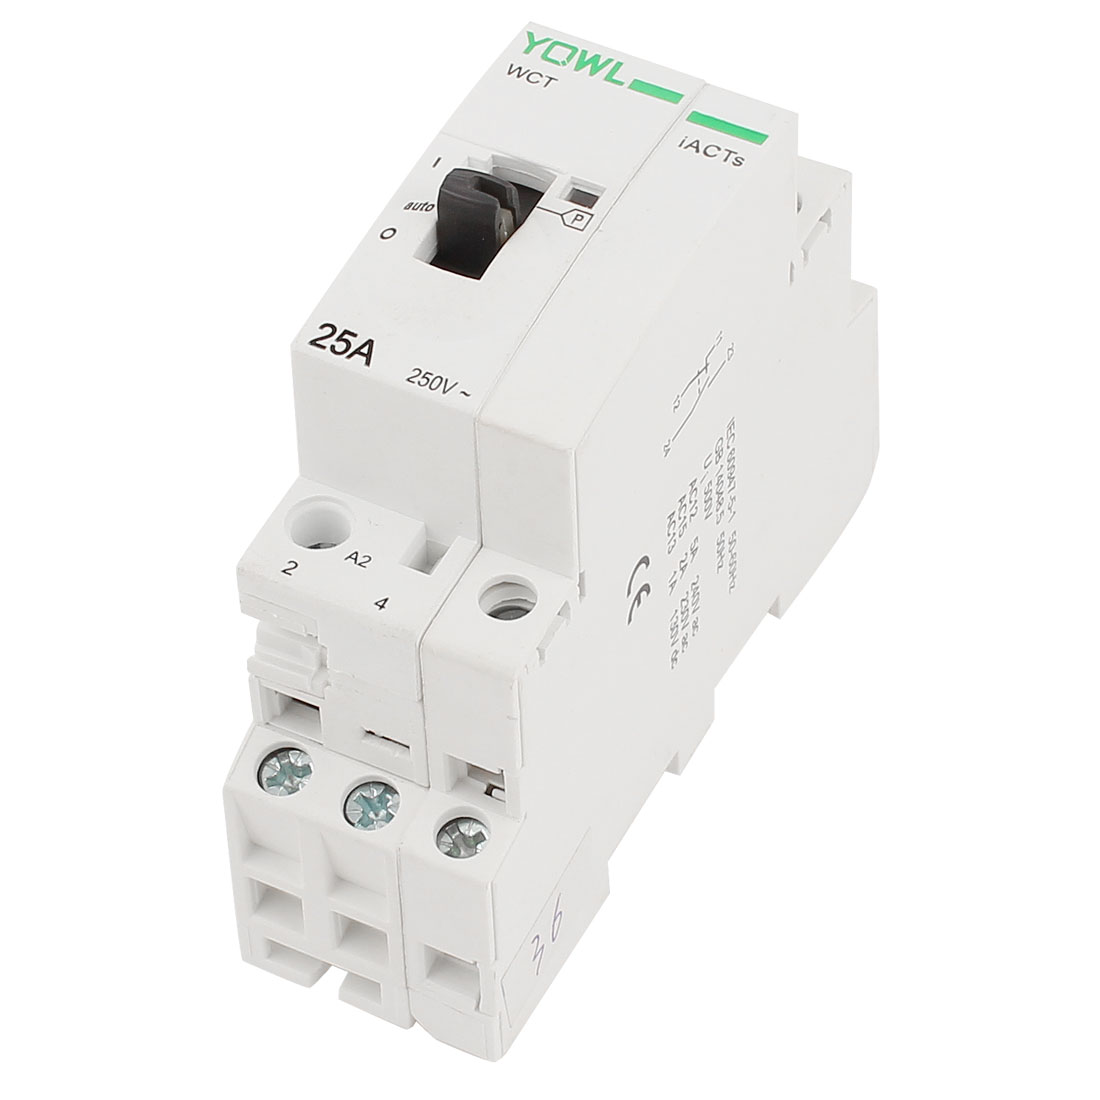 WCT-25A Double Pole Household Electric AC Power Contactor Uc 230V 25A